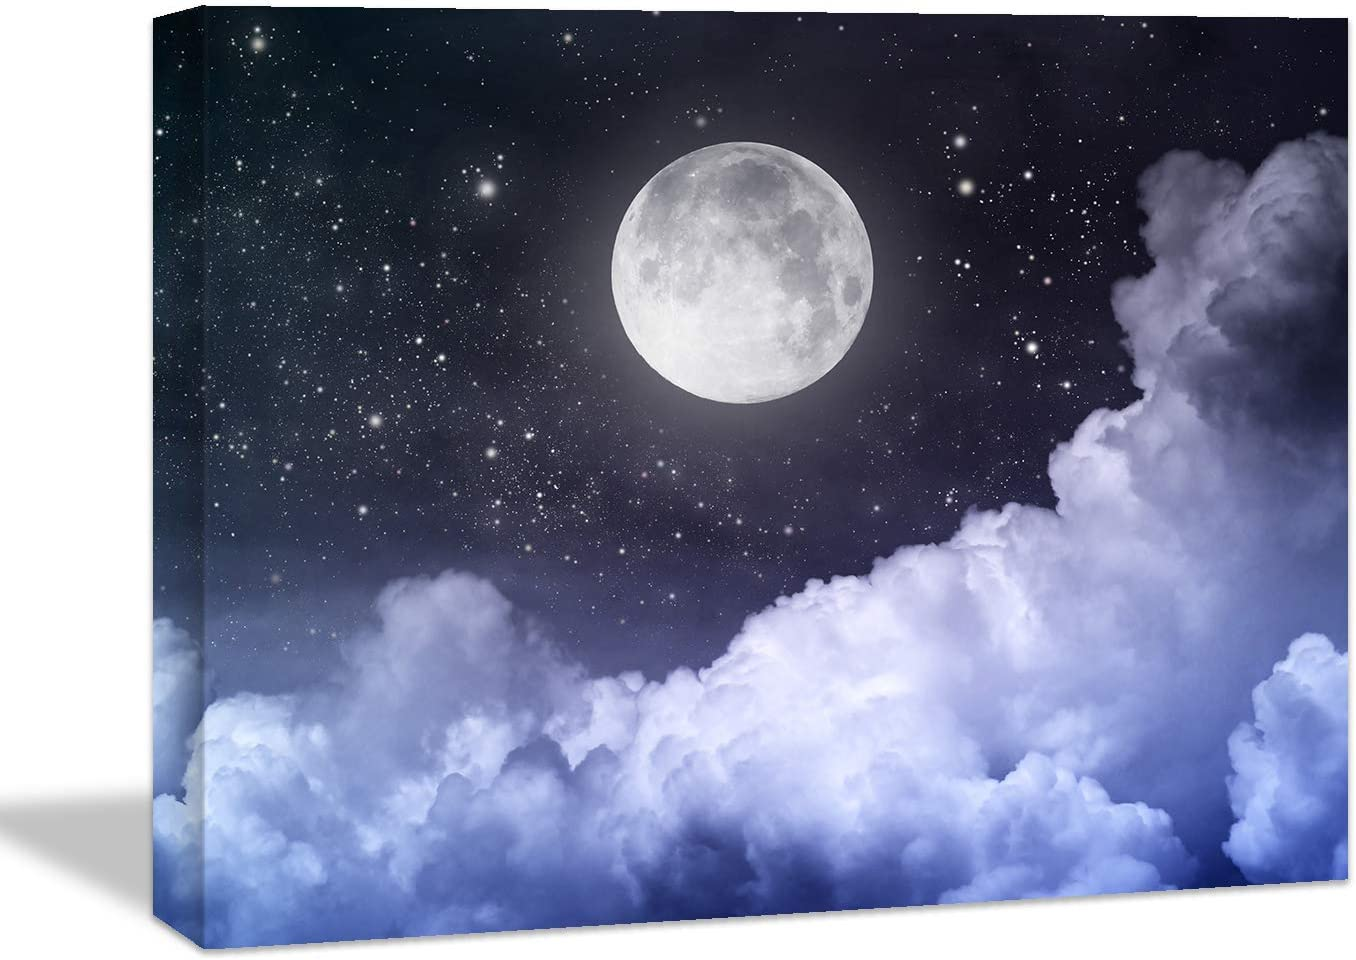 Looife Ocean Theme Canvas Wall Art, 48X36 Inch Full Moon with Clounds Under Purple Night Picture Prints Wall Decor, Nature Scenery Painting Wall Deco Ready to Hang